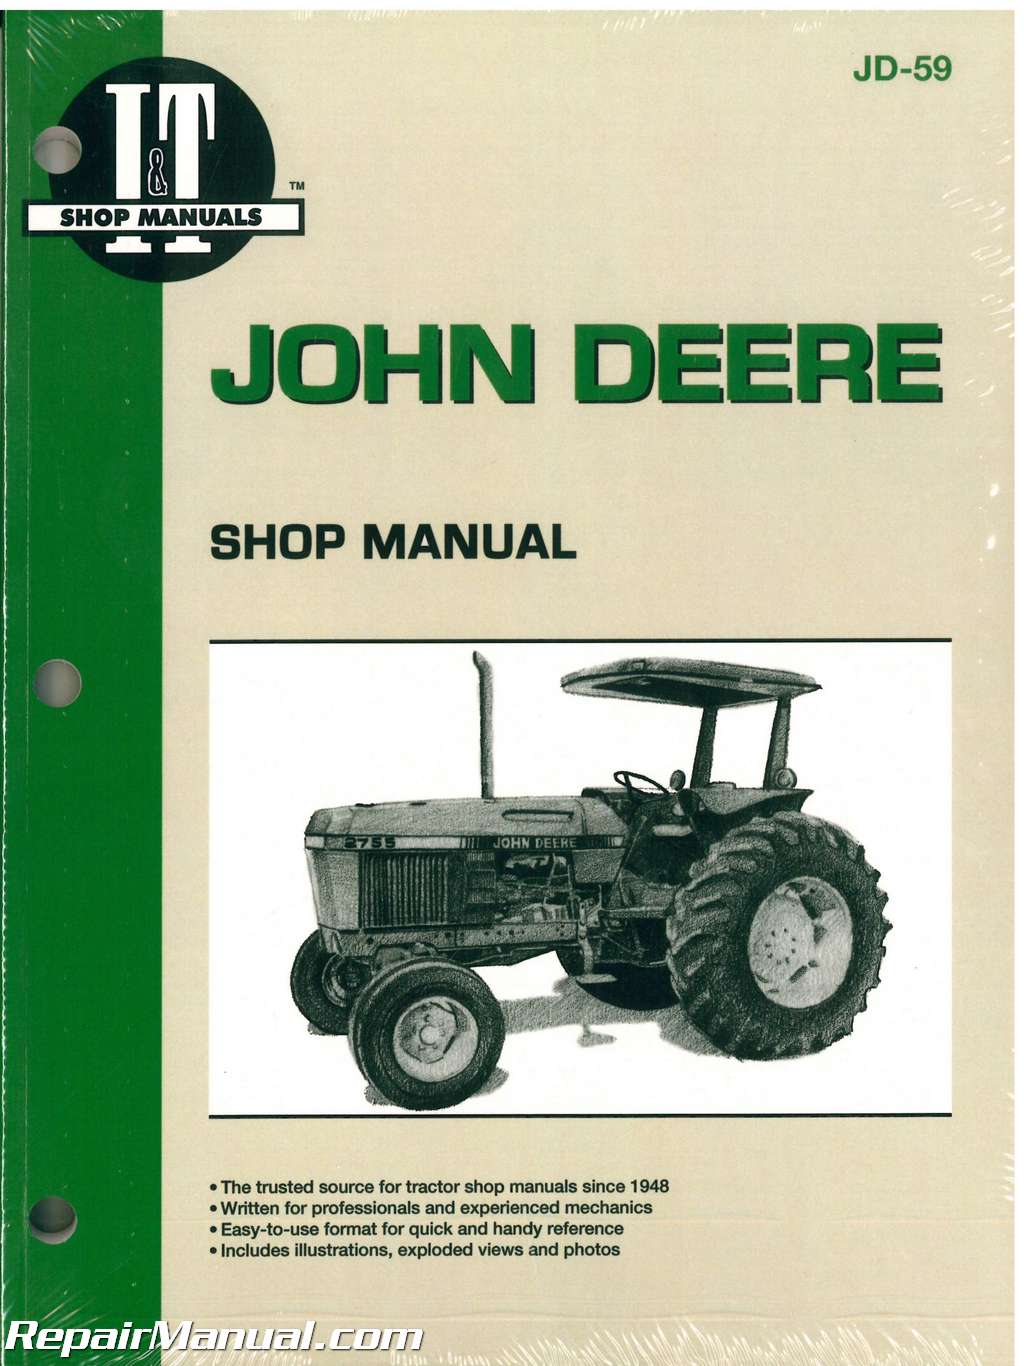 john deere 2750 2755 2855 2955 tractor workshop manual rh repairmanual com Wii Remote Manual Wii Remote Manual